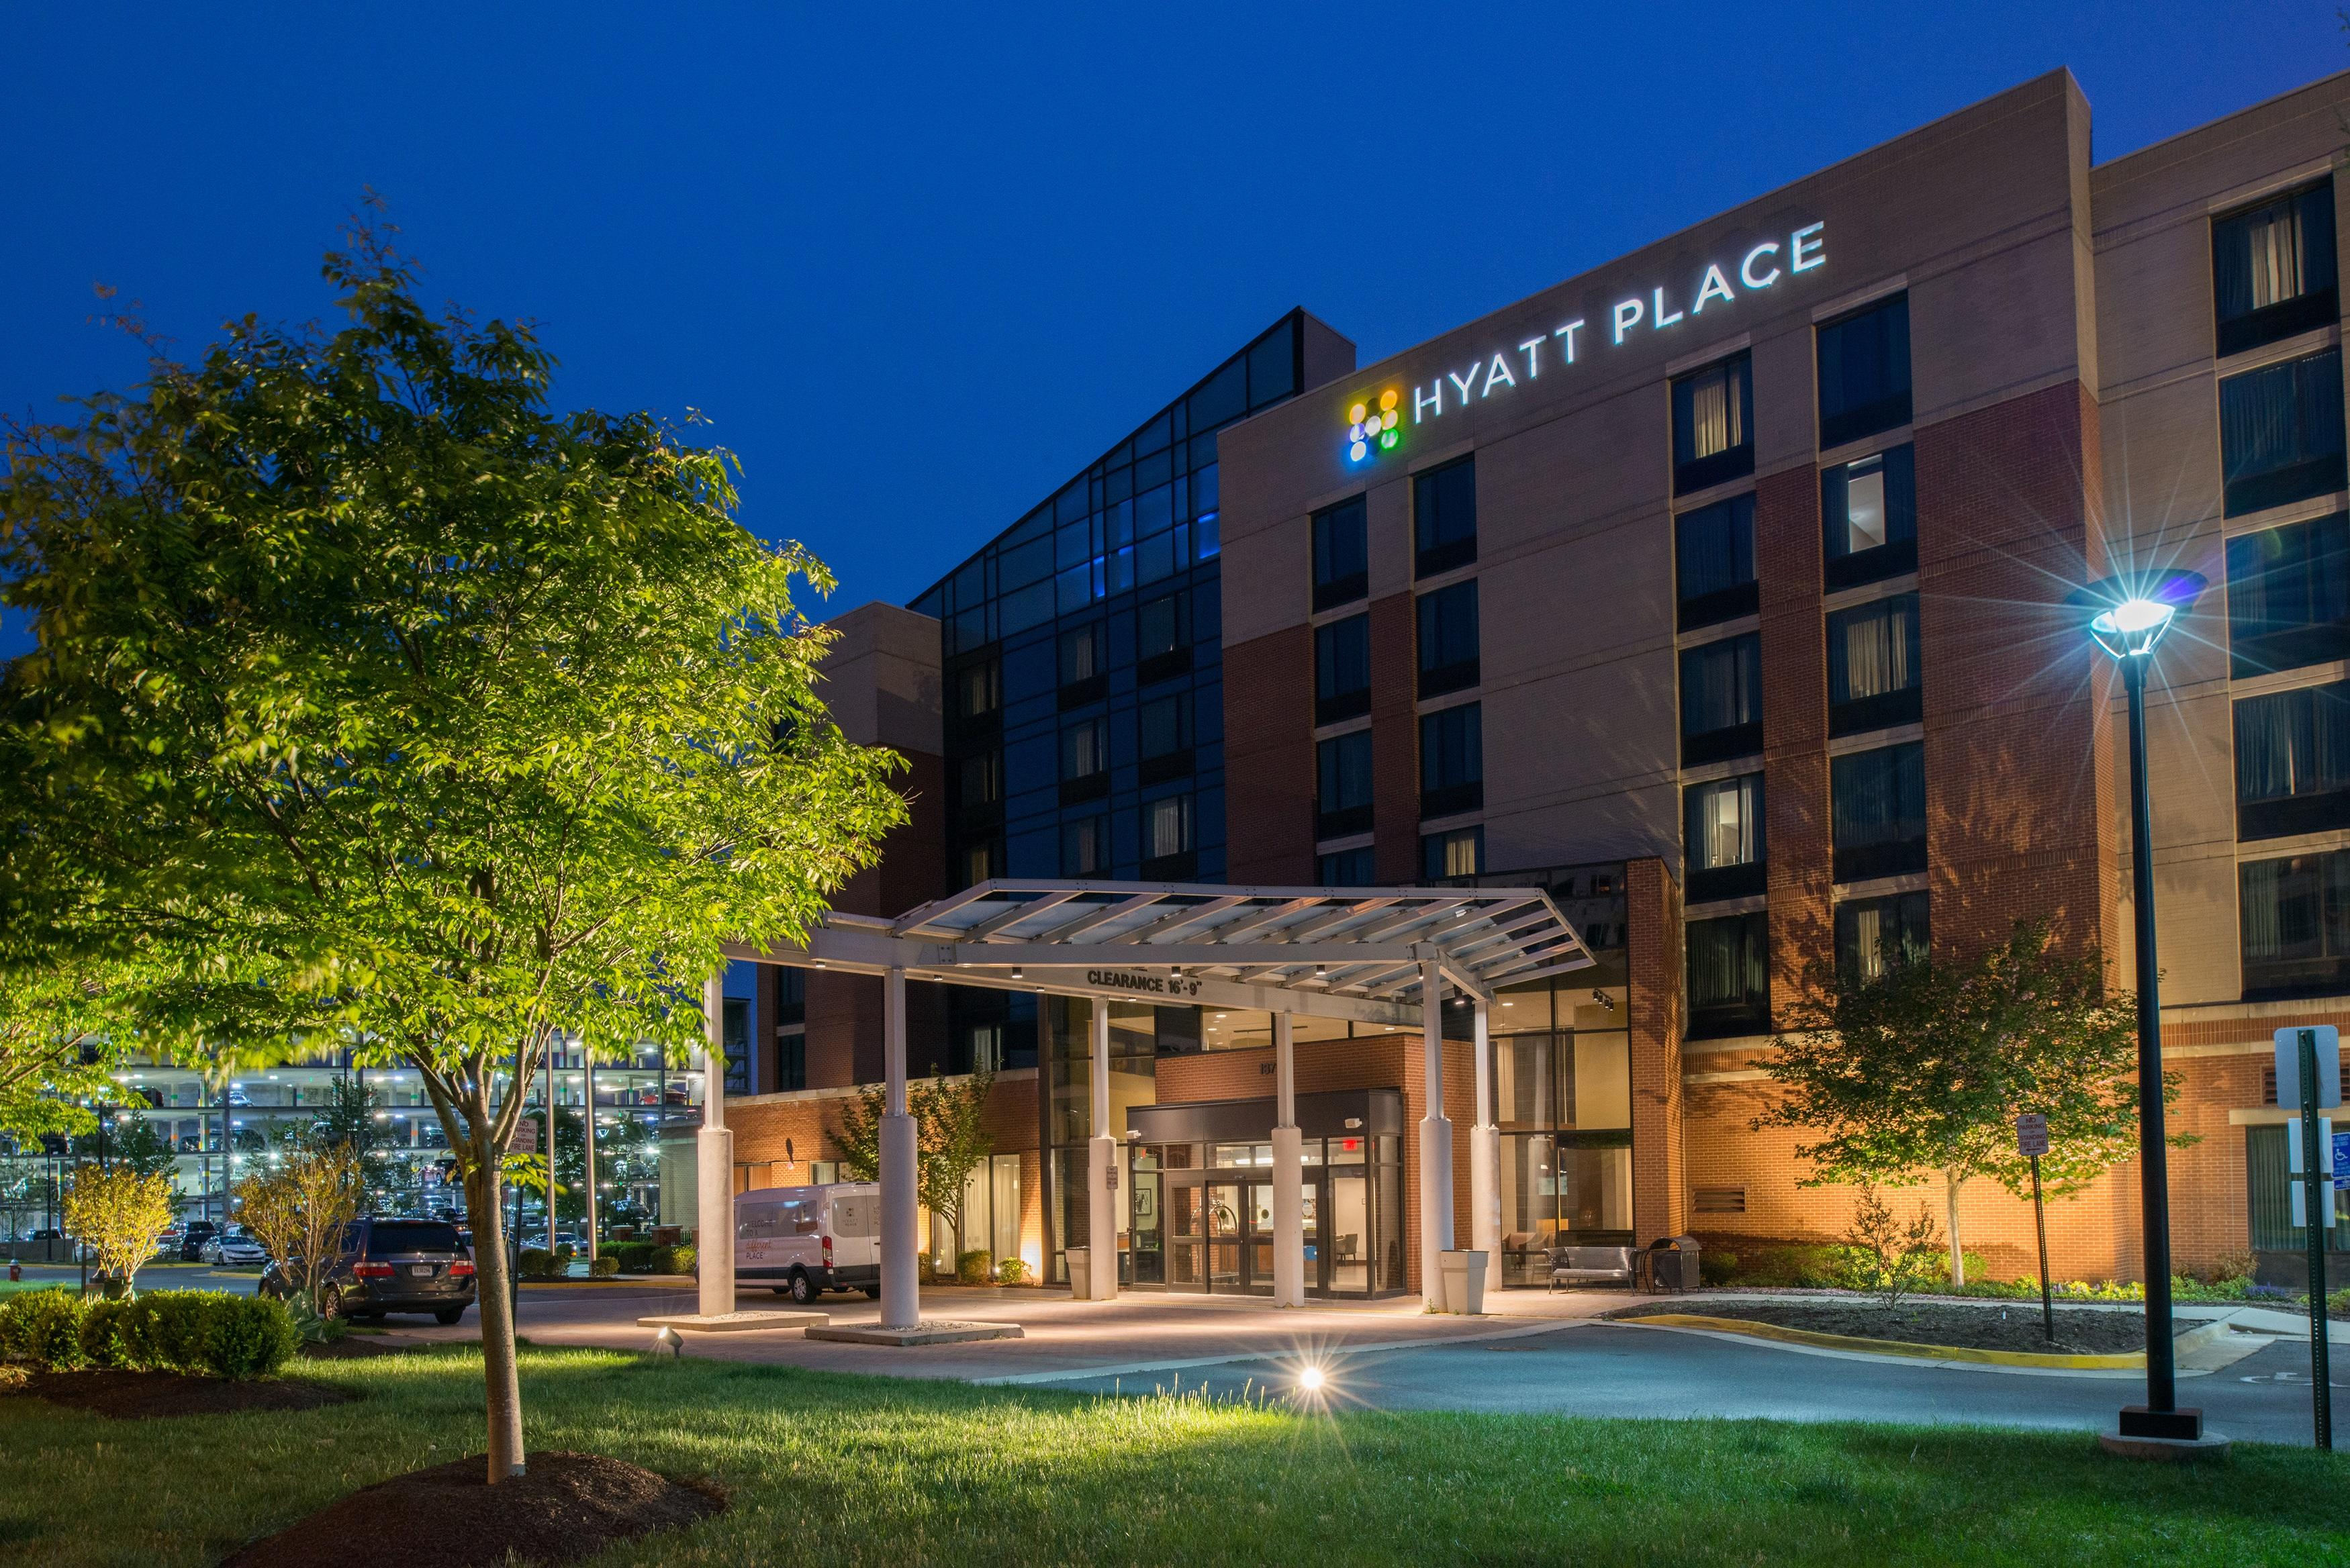 Hotels Near Dulles Airport With Shuttle Service